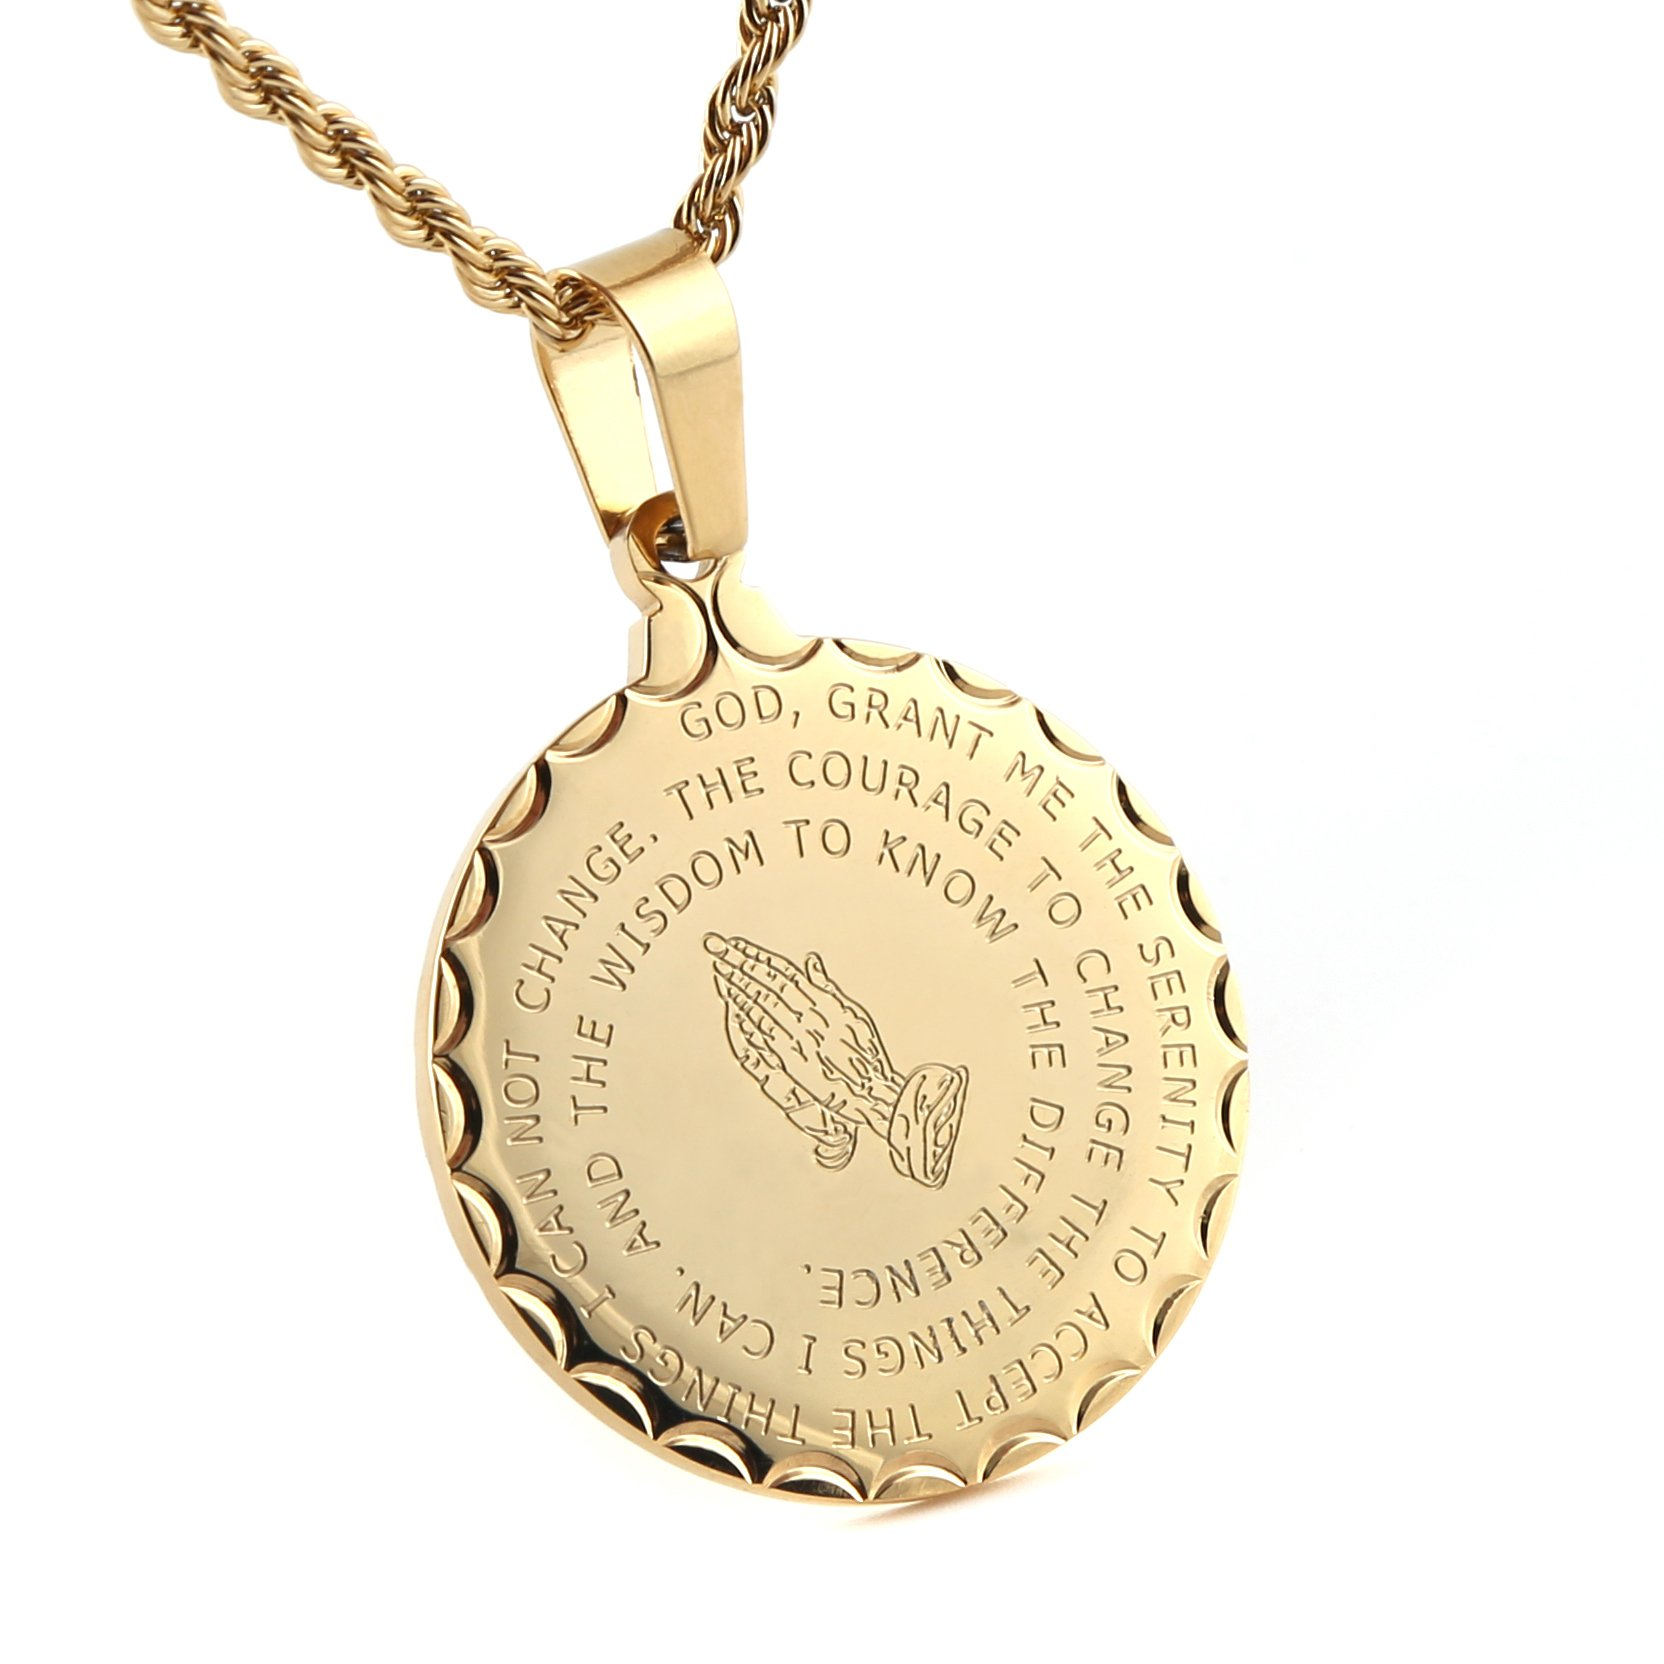 HZMAN Bible Verse Prayer Necklace Christian Jewelry Gold Stainless Steel Praying Hands Coin Medal Pendant (Gold)